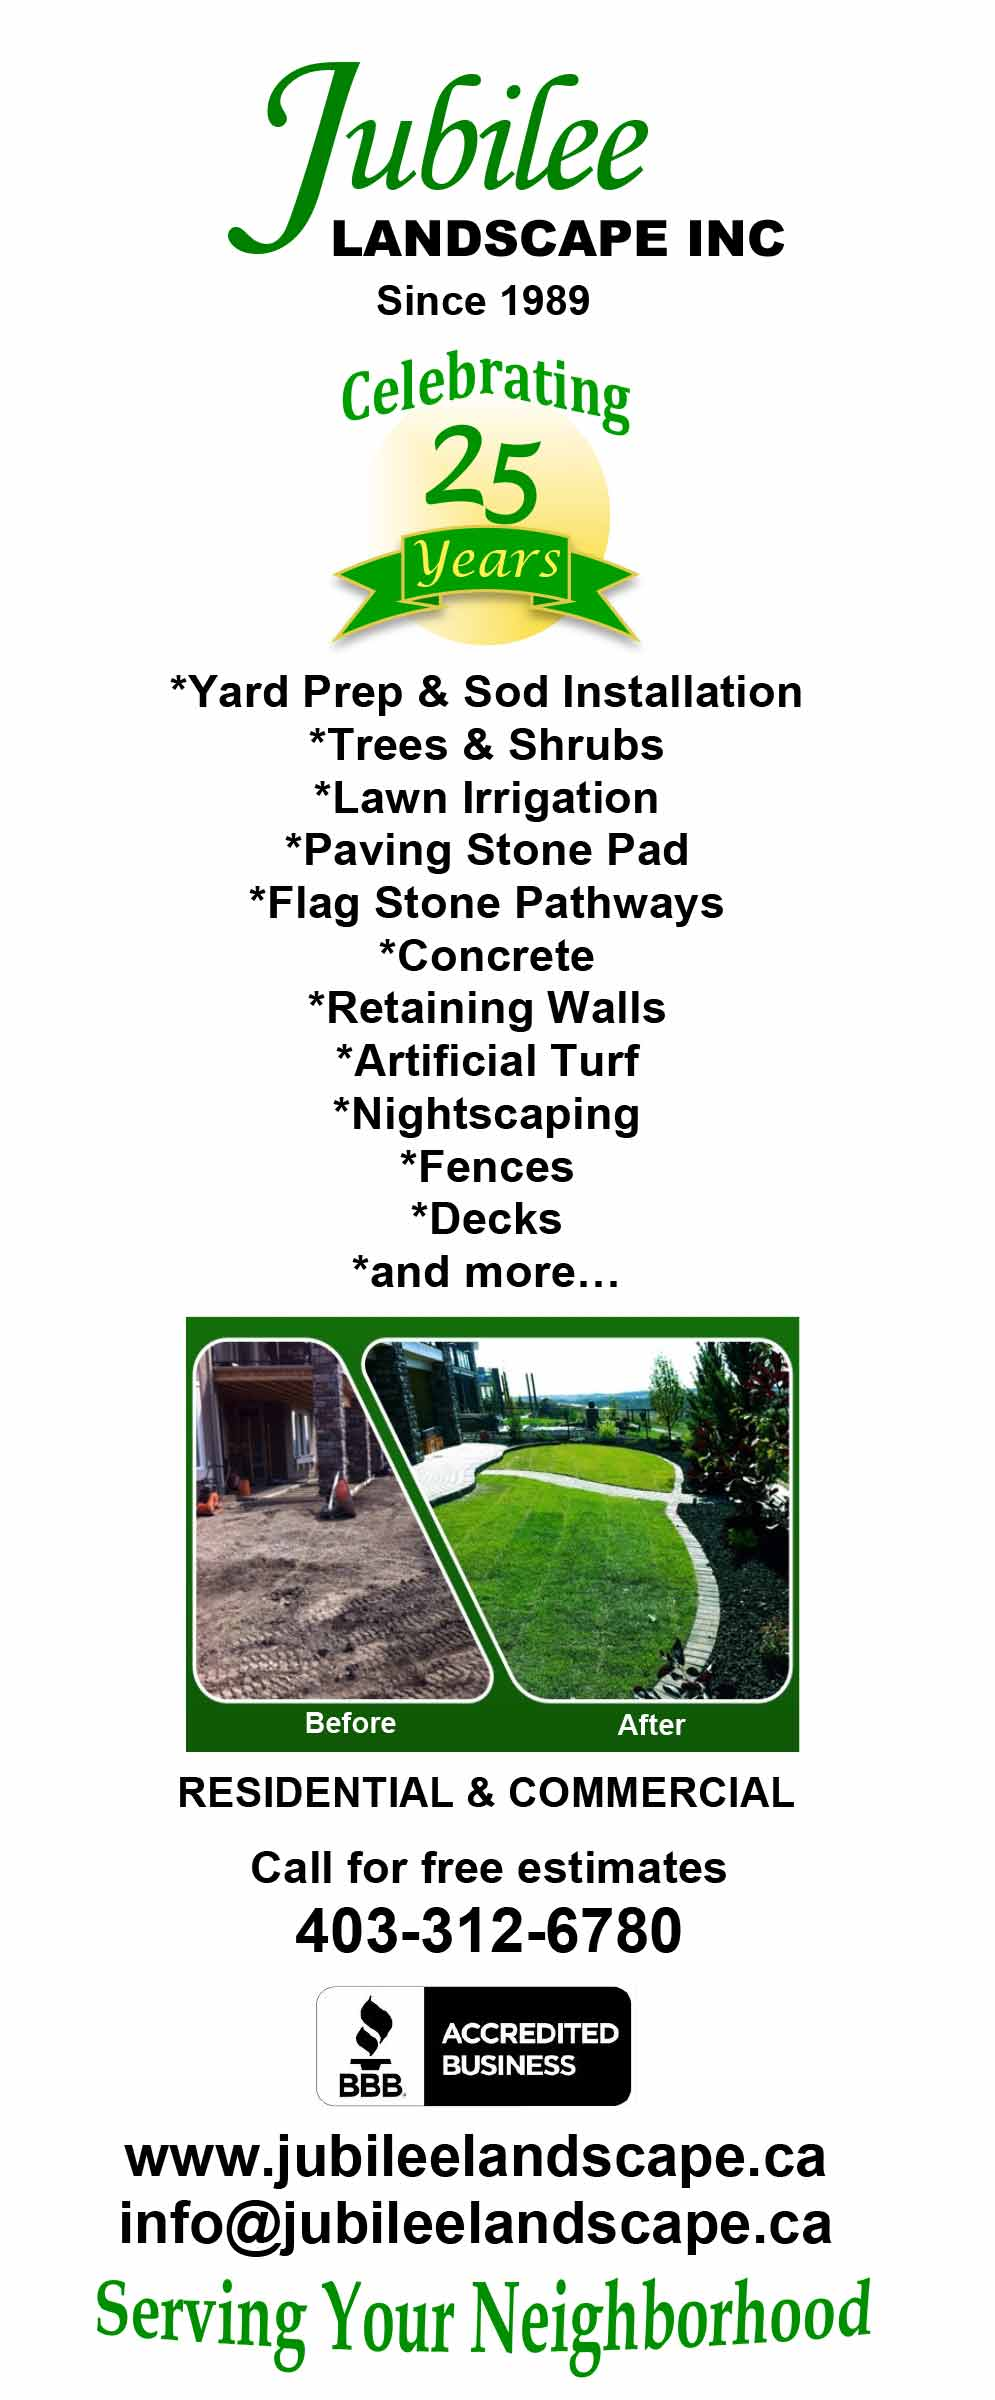 Home · About Us · Services ... - Landscaping Services - Jubilee Landscape Inc.